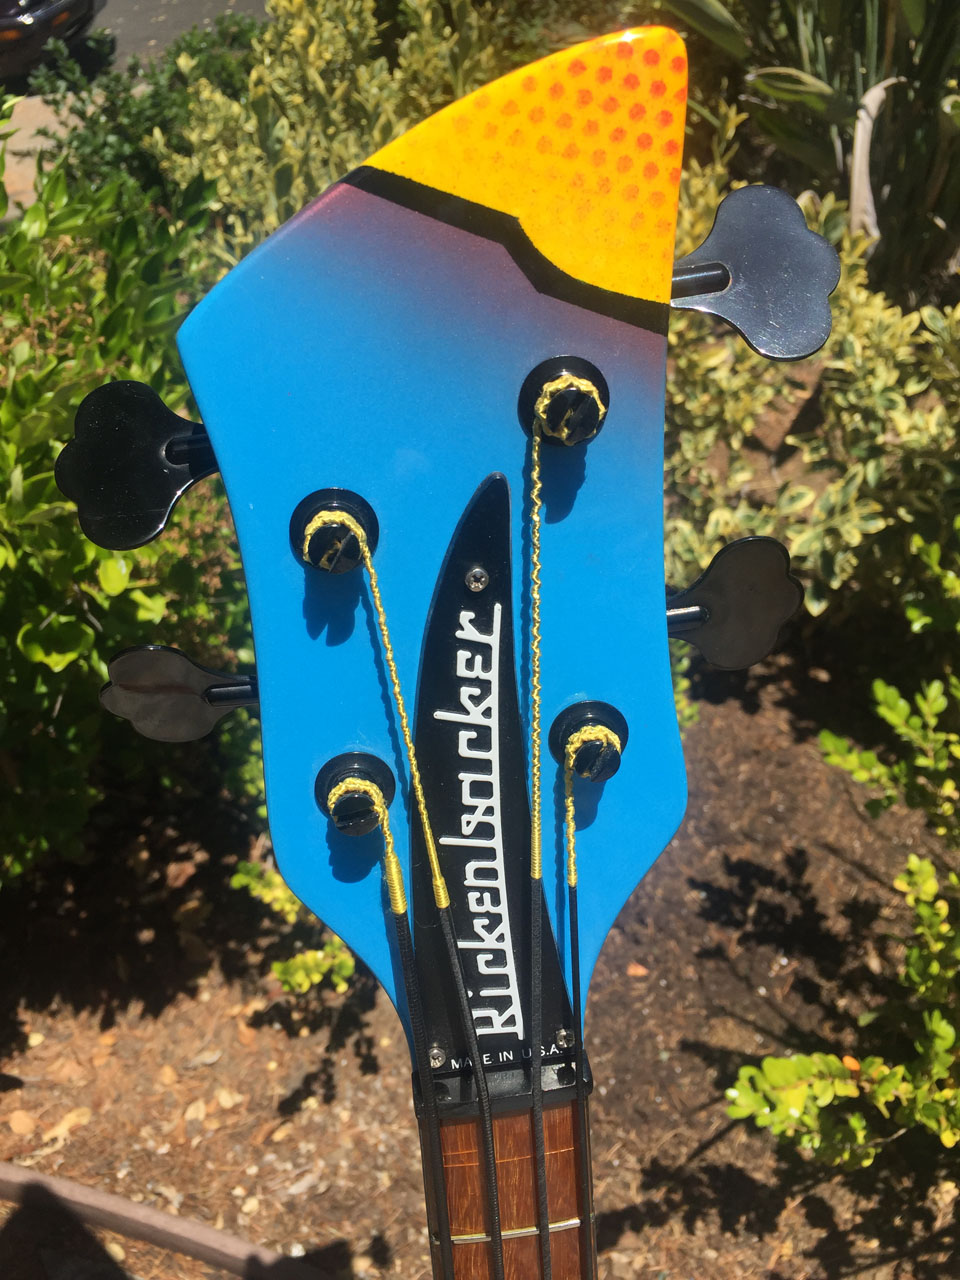 DRAMATIC HEADSTOCK FEATURES COPPER FADE AND DAY-GLO DOTS